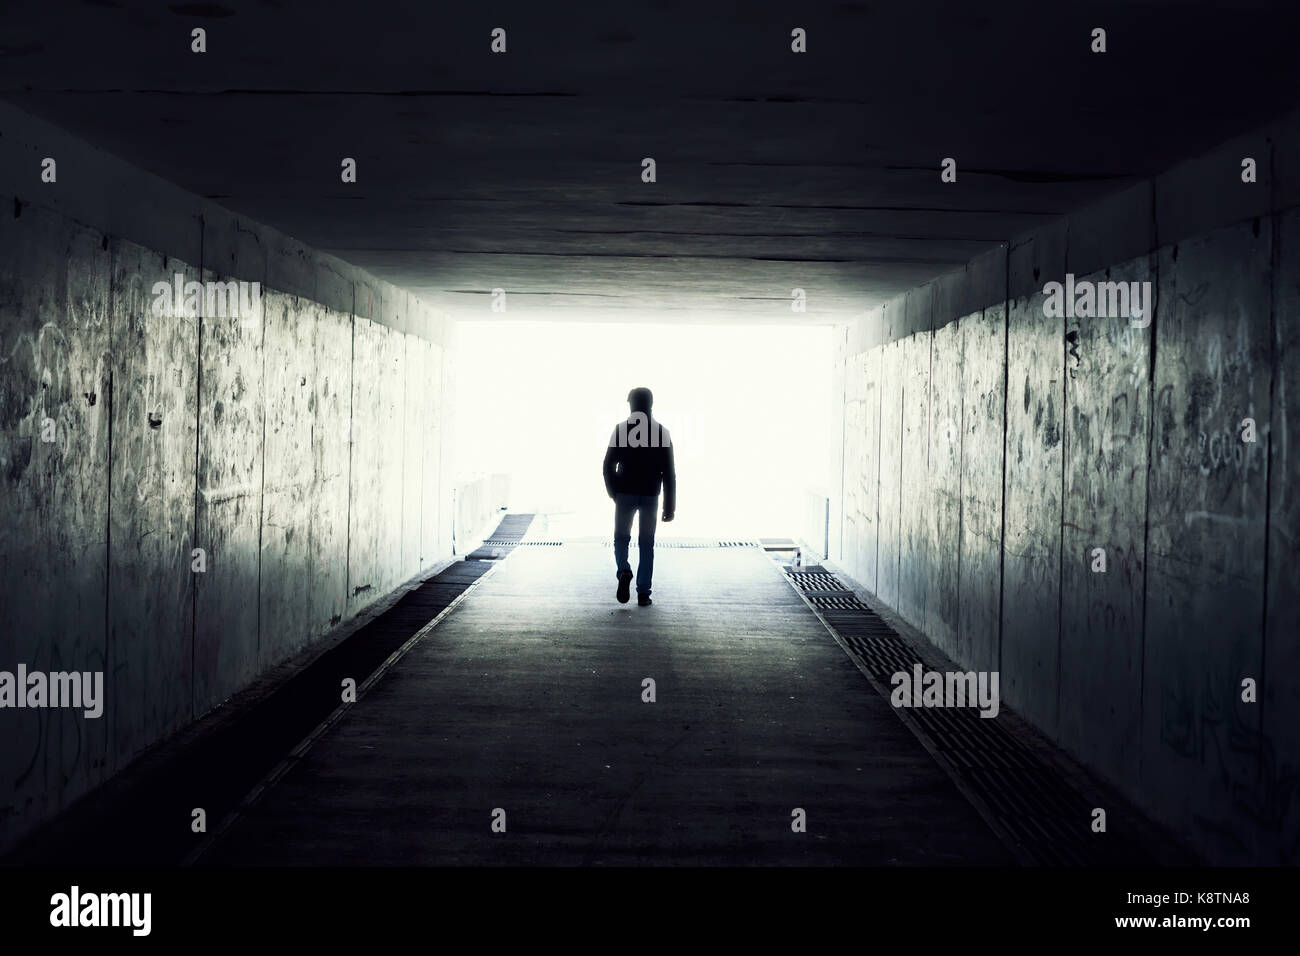 silhouette in a subway tunnel. Light at End of Tunnel - Stock Image